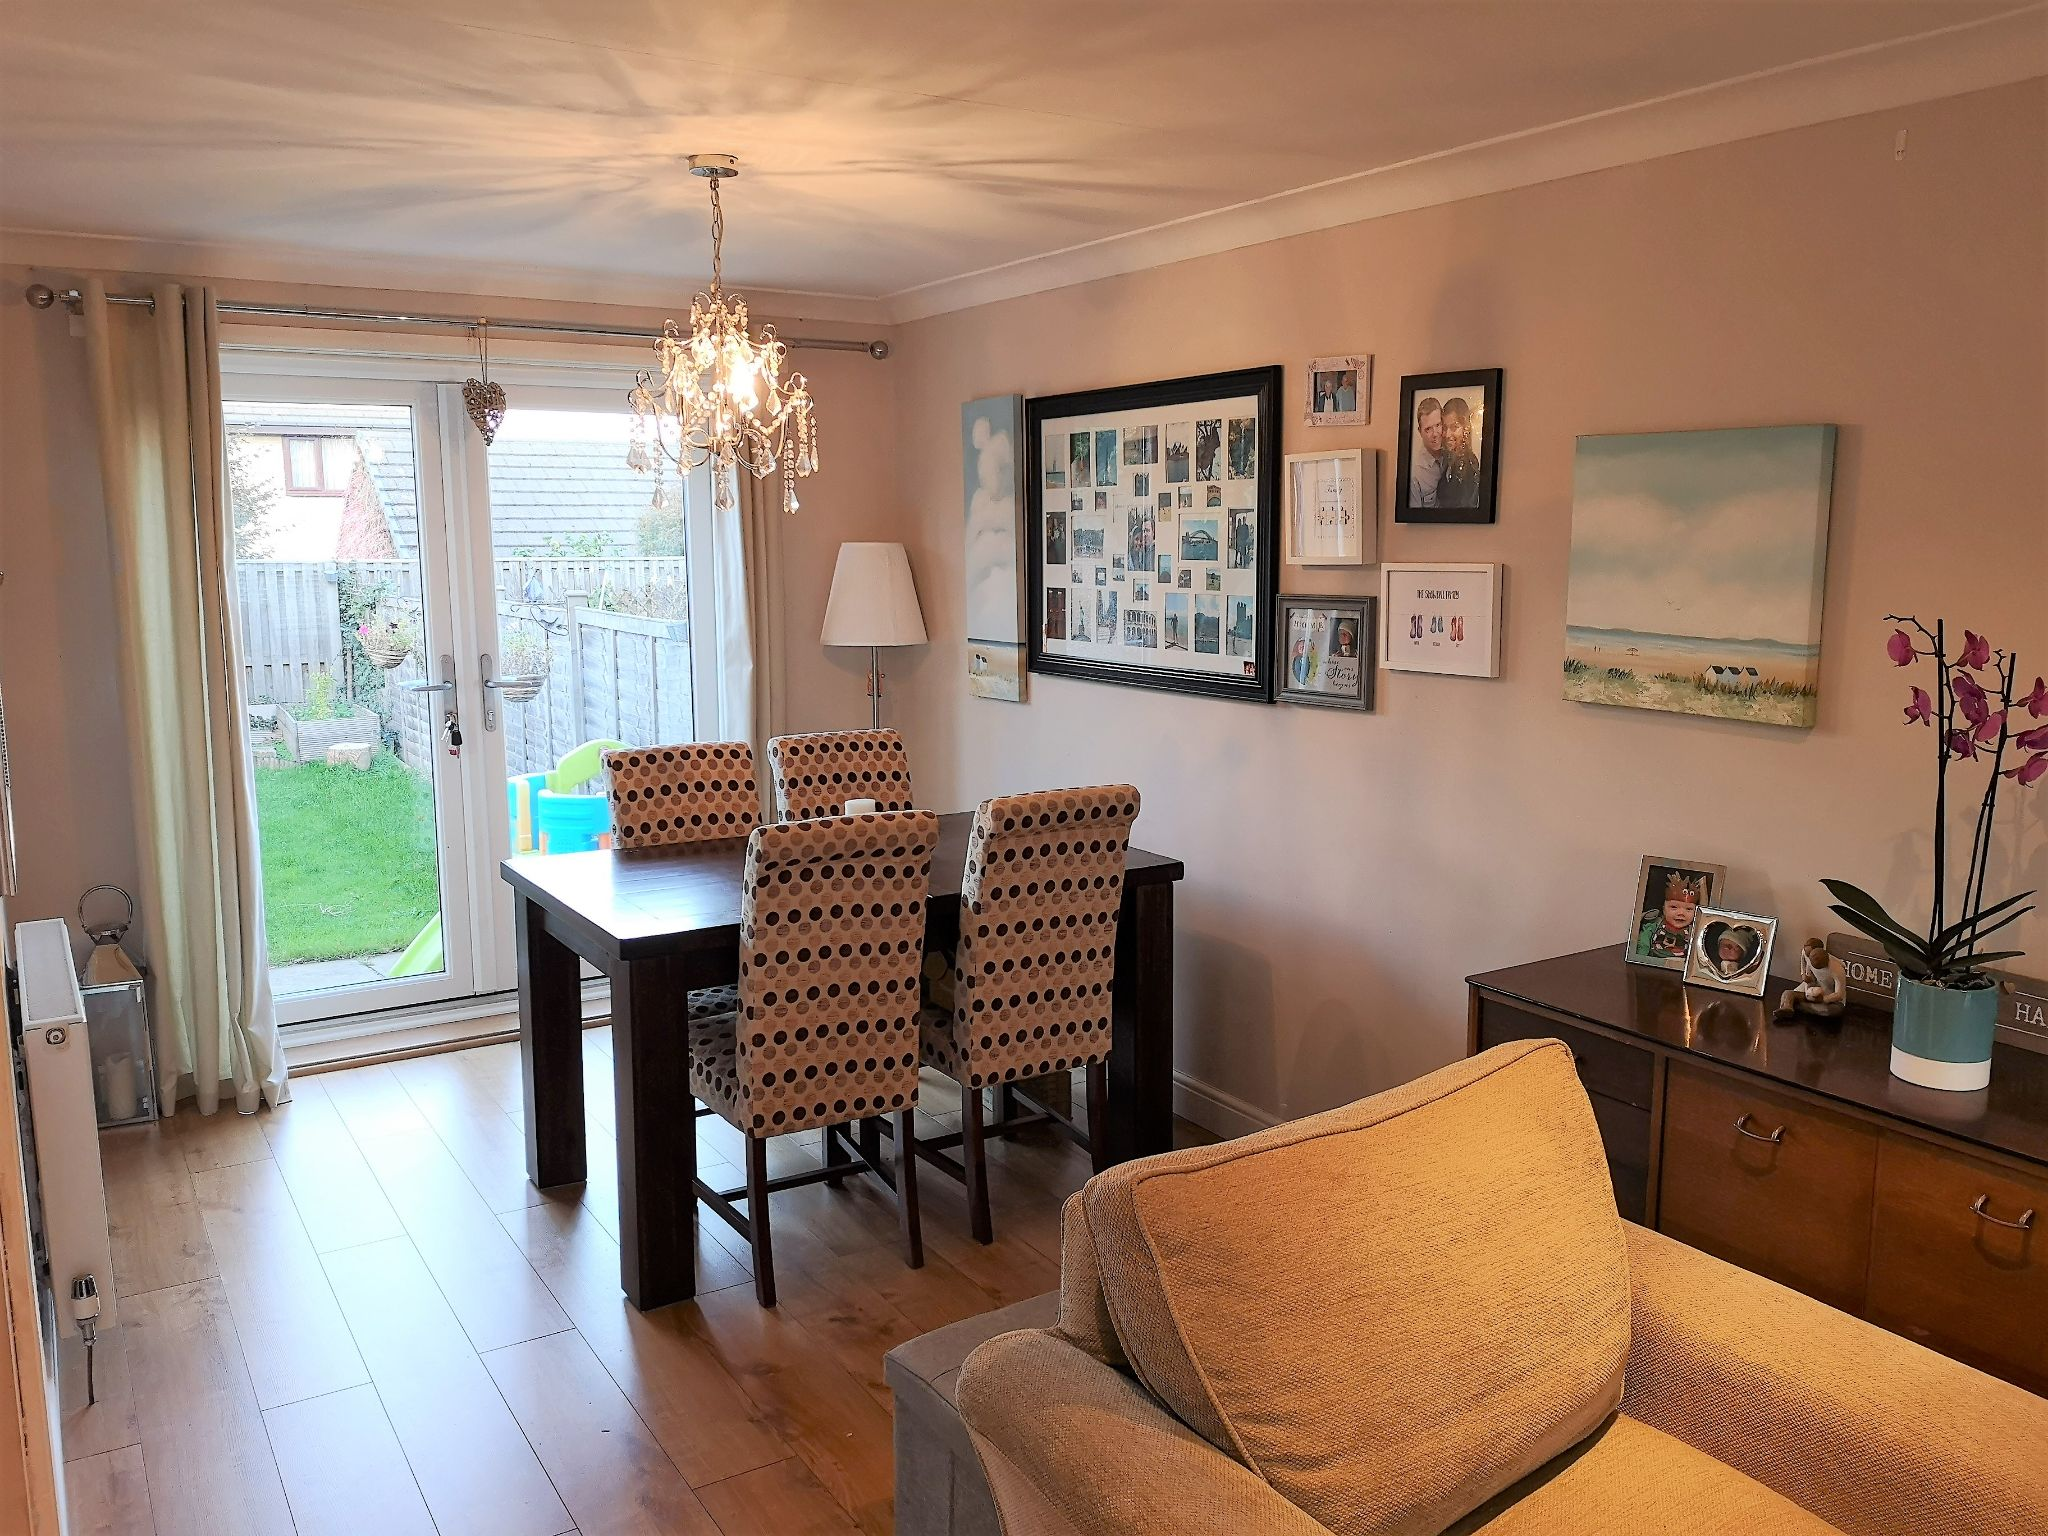 3 bedroom semi-detached house SSTC in Huddersfield - Photograph 4